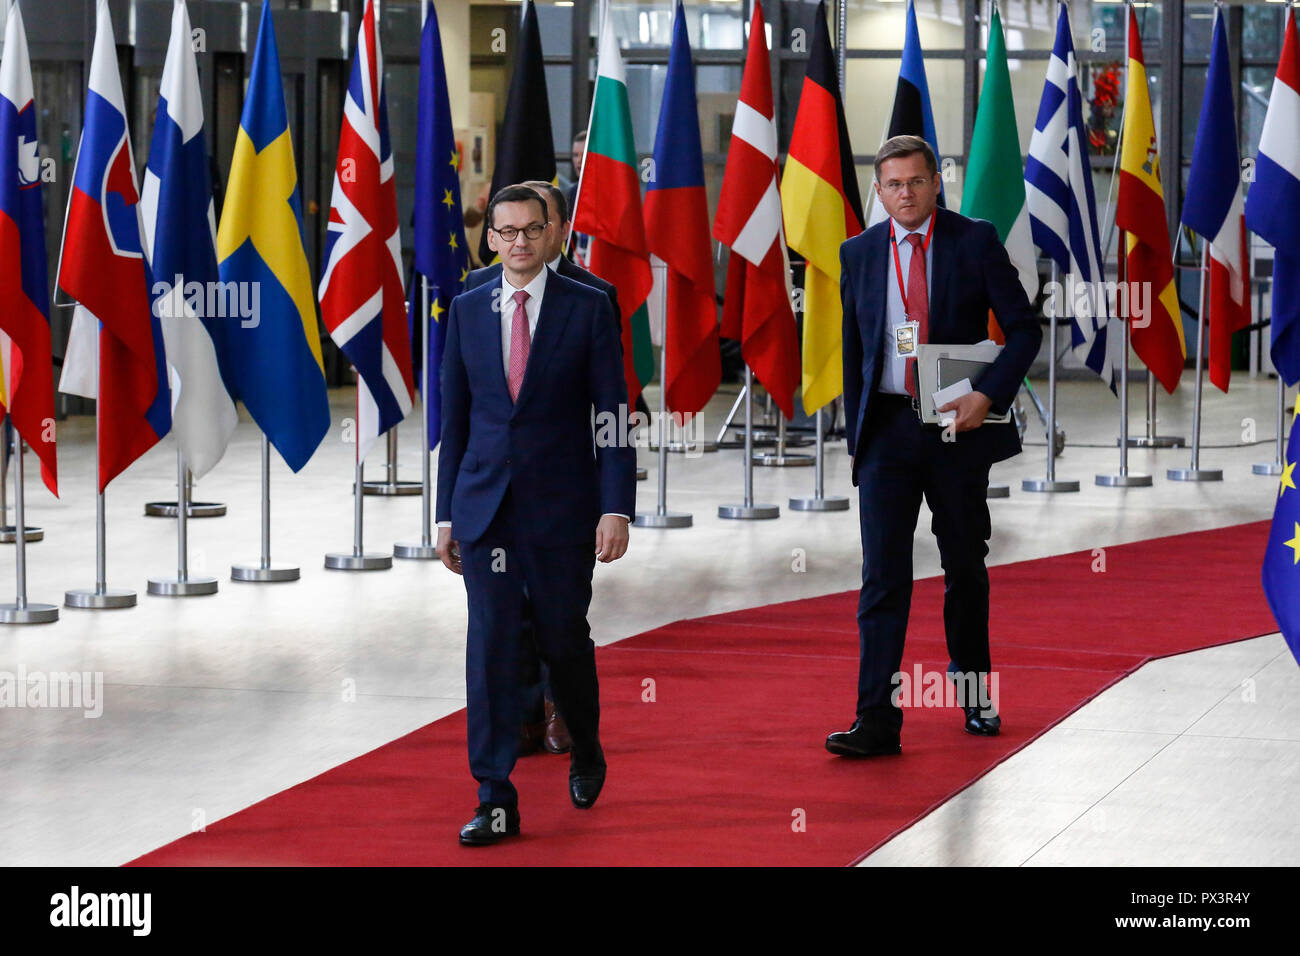 Brussels, Belgium. 18th Oct 2018. Mateusz Morawiecki, Prime Minister of Poland arrives for European Council meeting in Brussels, Belgium on October 18, 2018.The summit concentrates on migration and security policies. Credit: Michal Busko/Alamy Live News - Stock Image